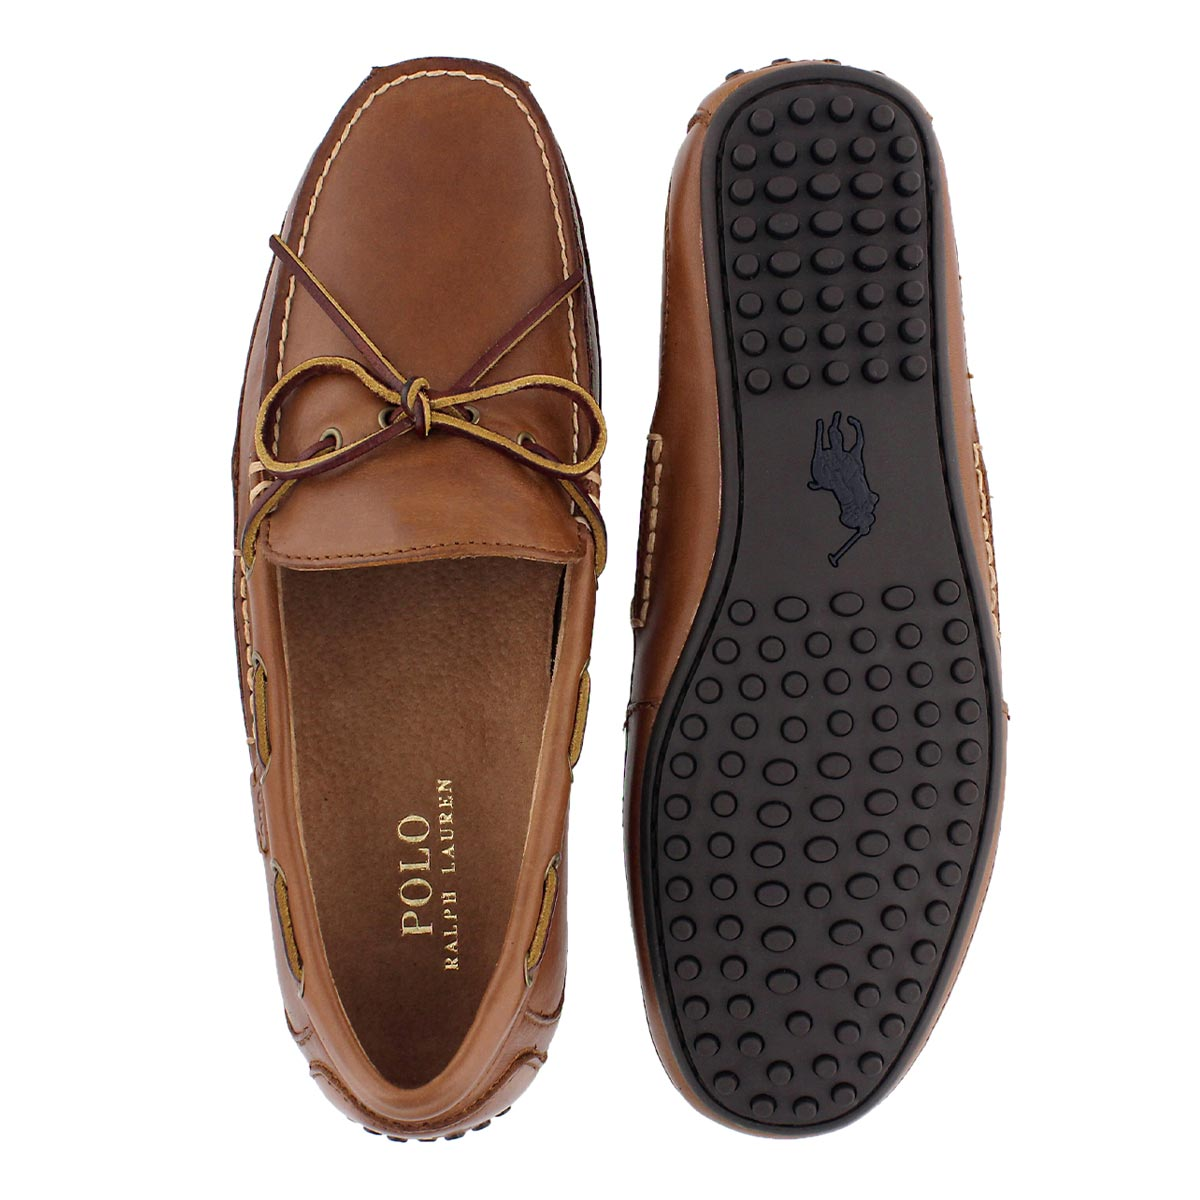 Mns Wyndings polo tan moccasin